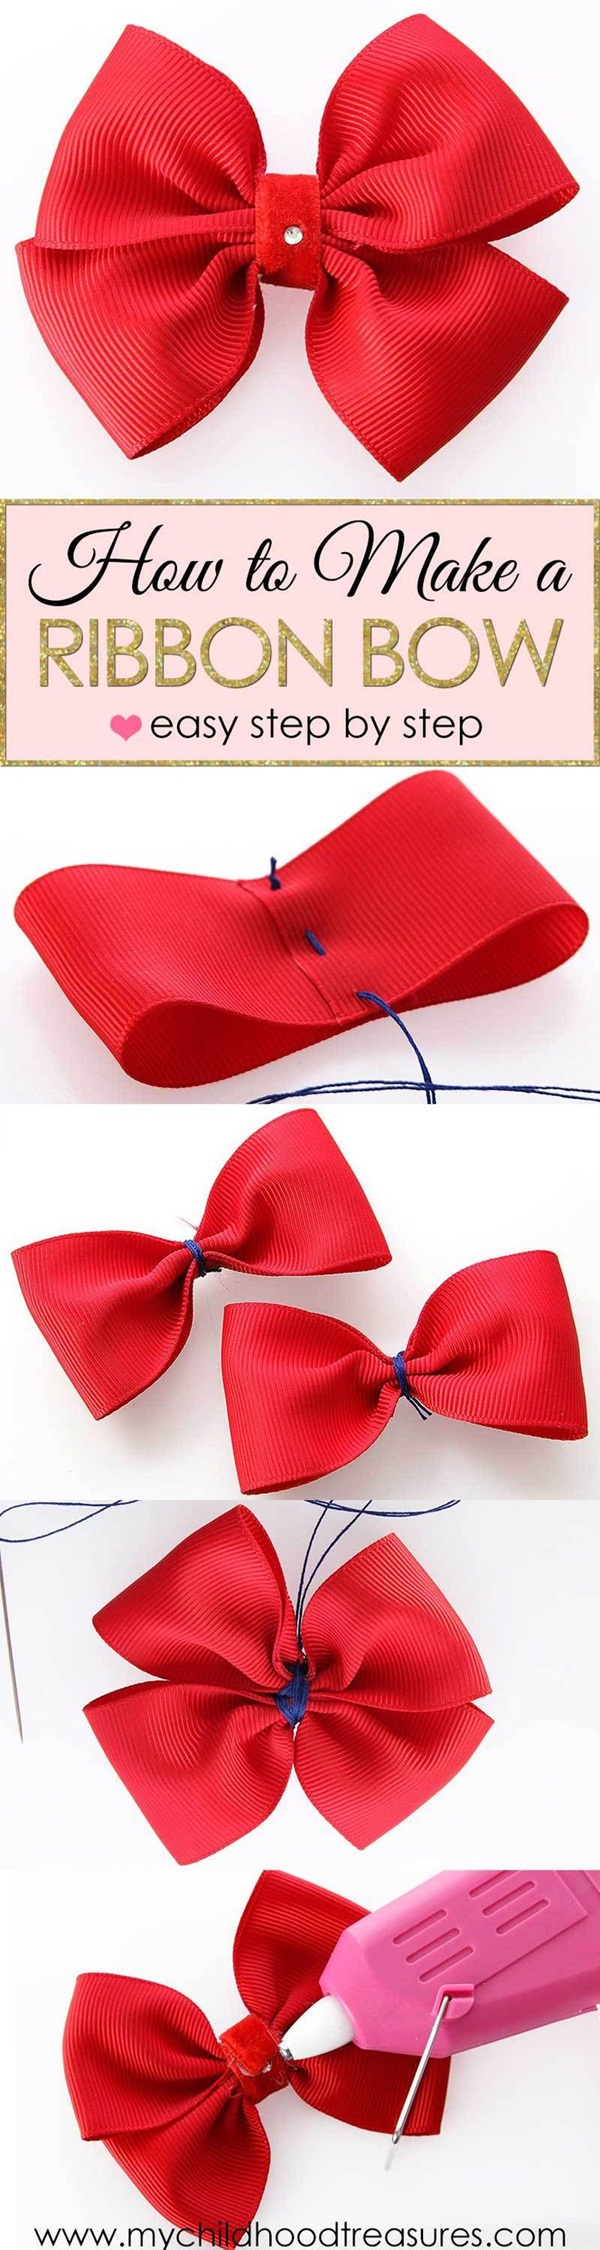 how to make an bow